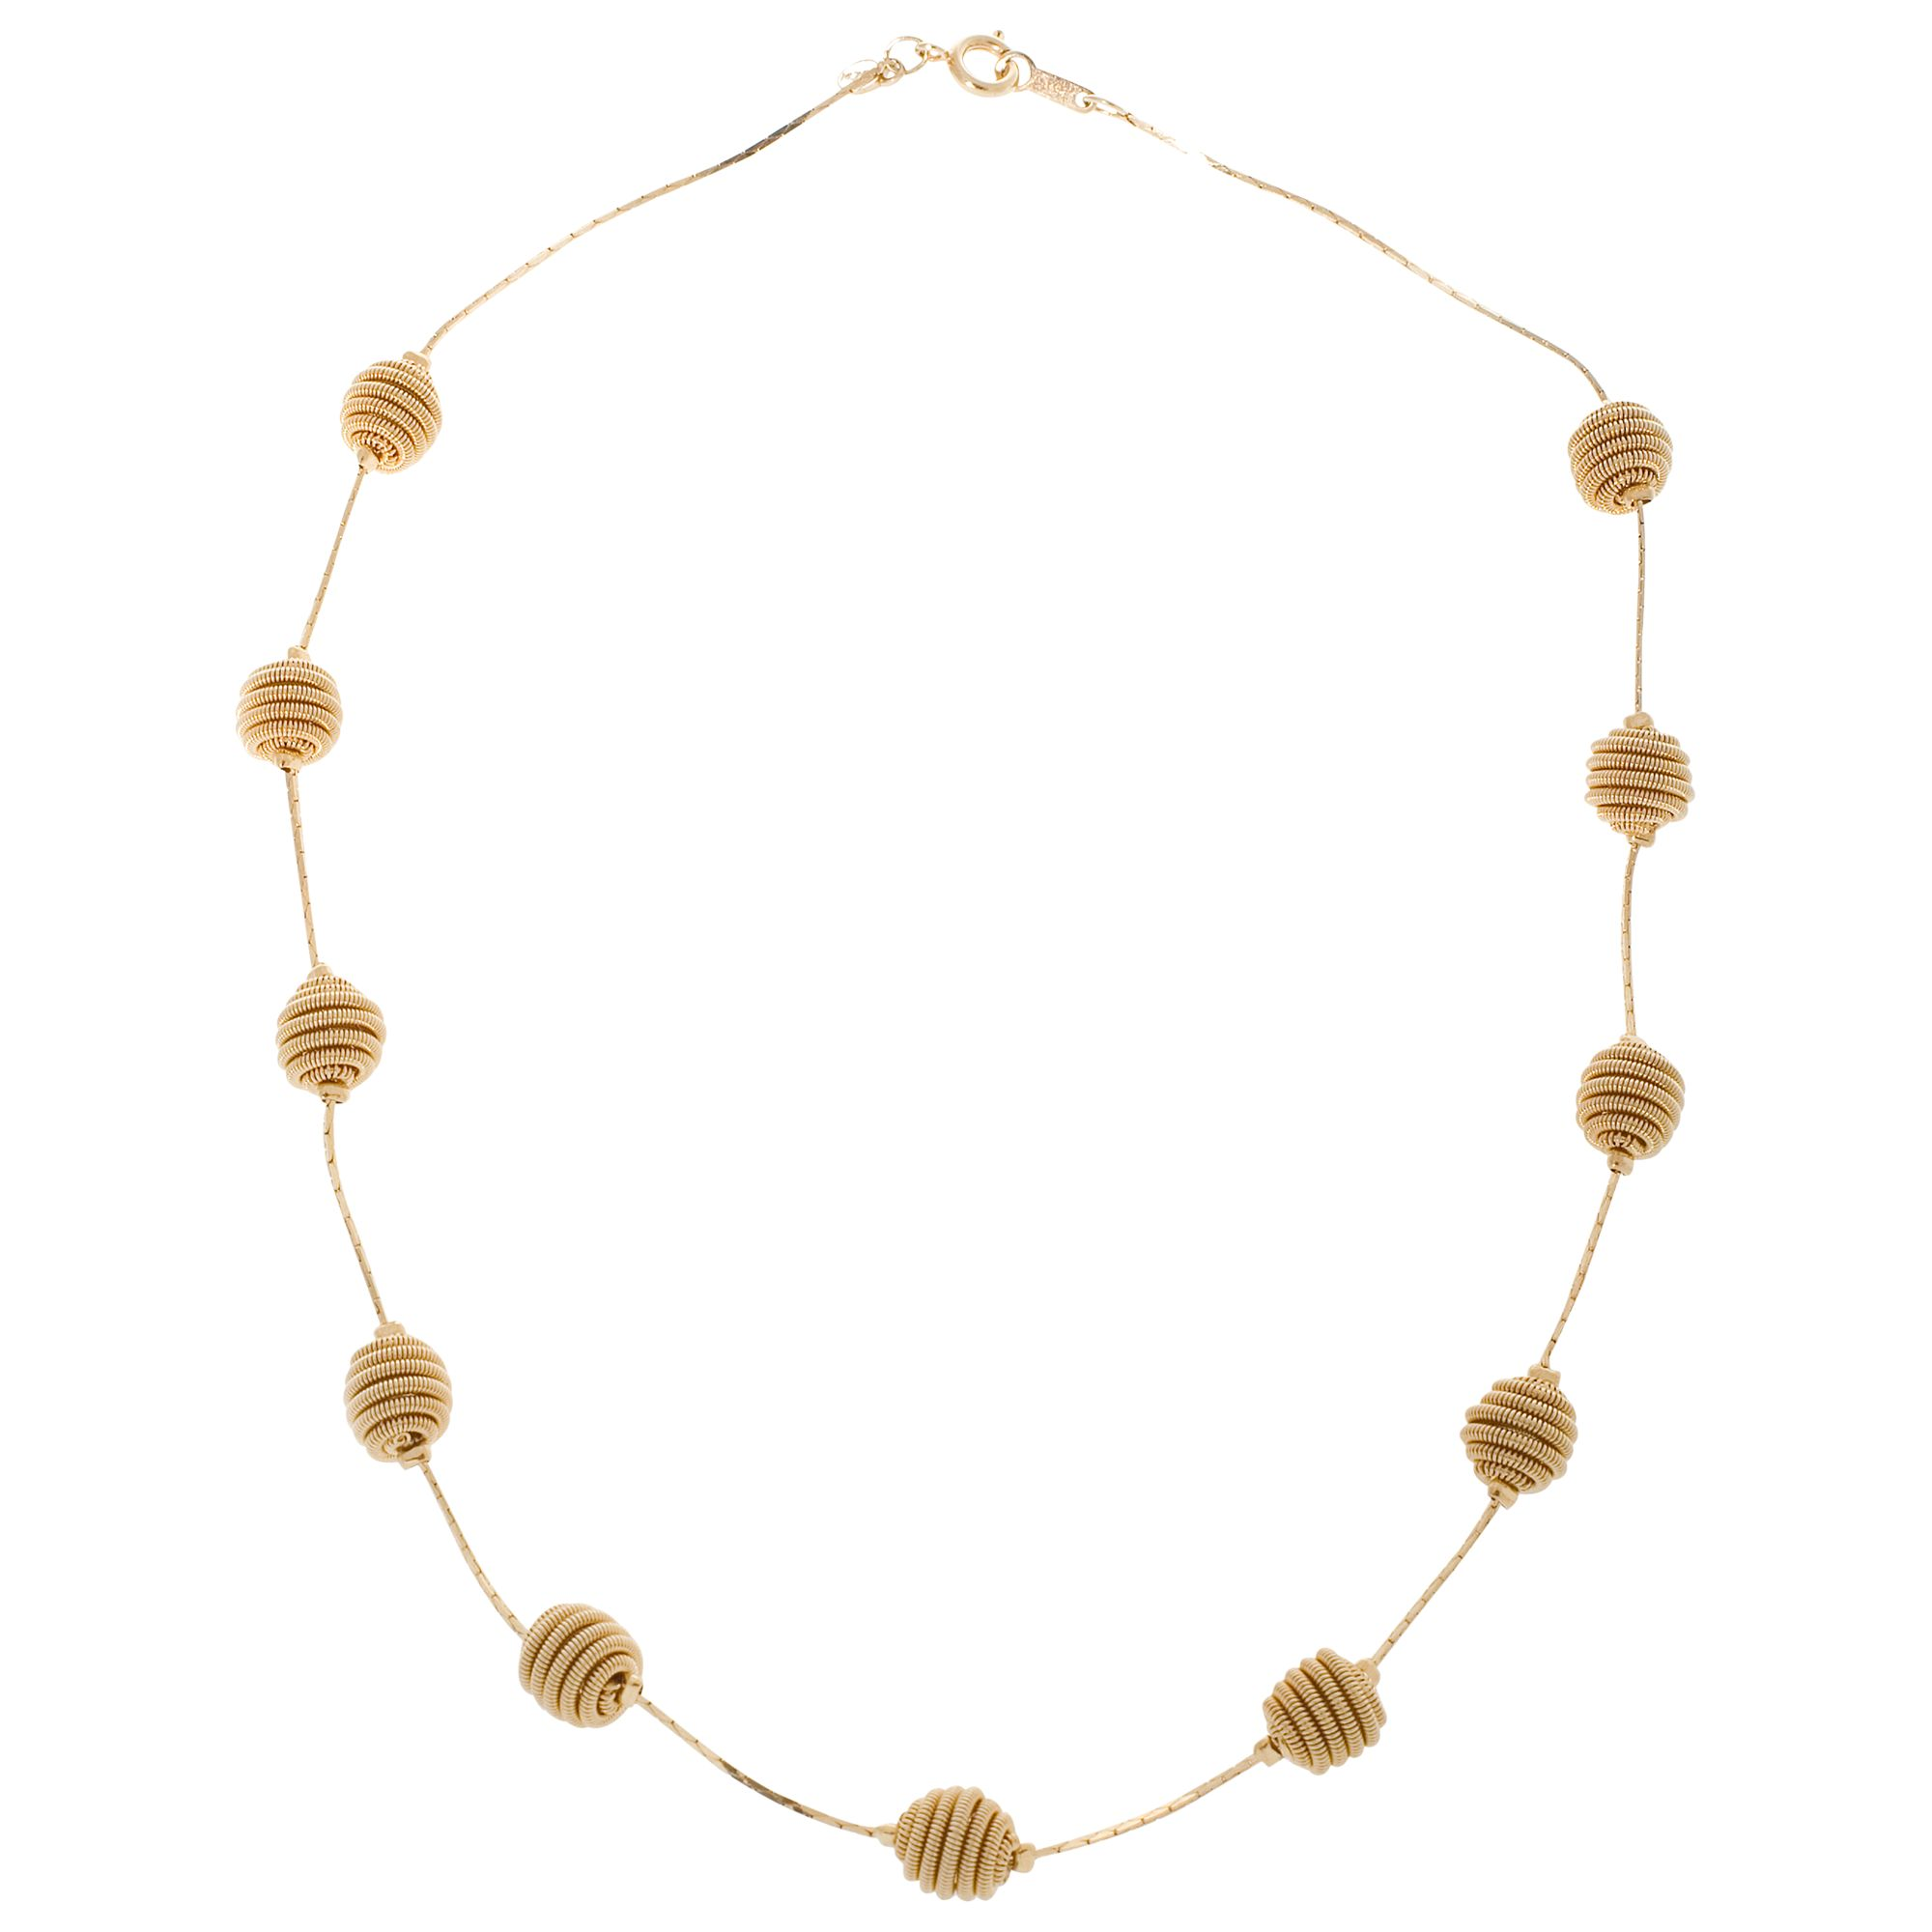 Monet Juted Gold Plated Necklace